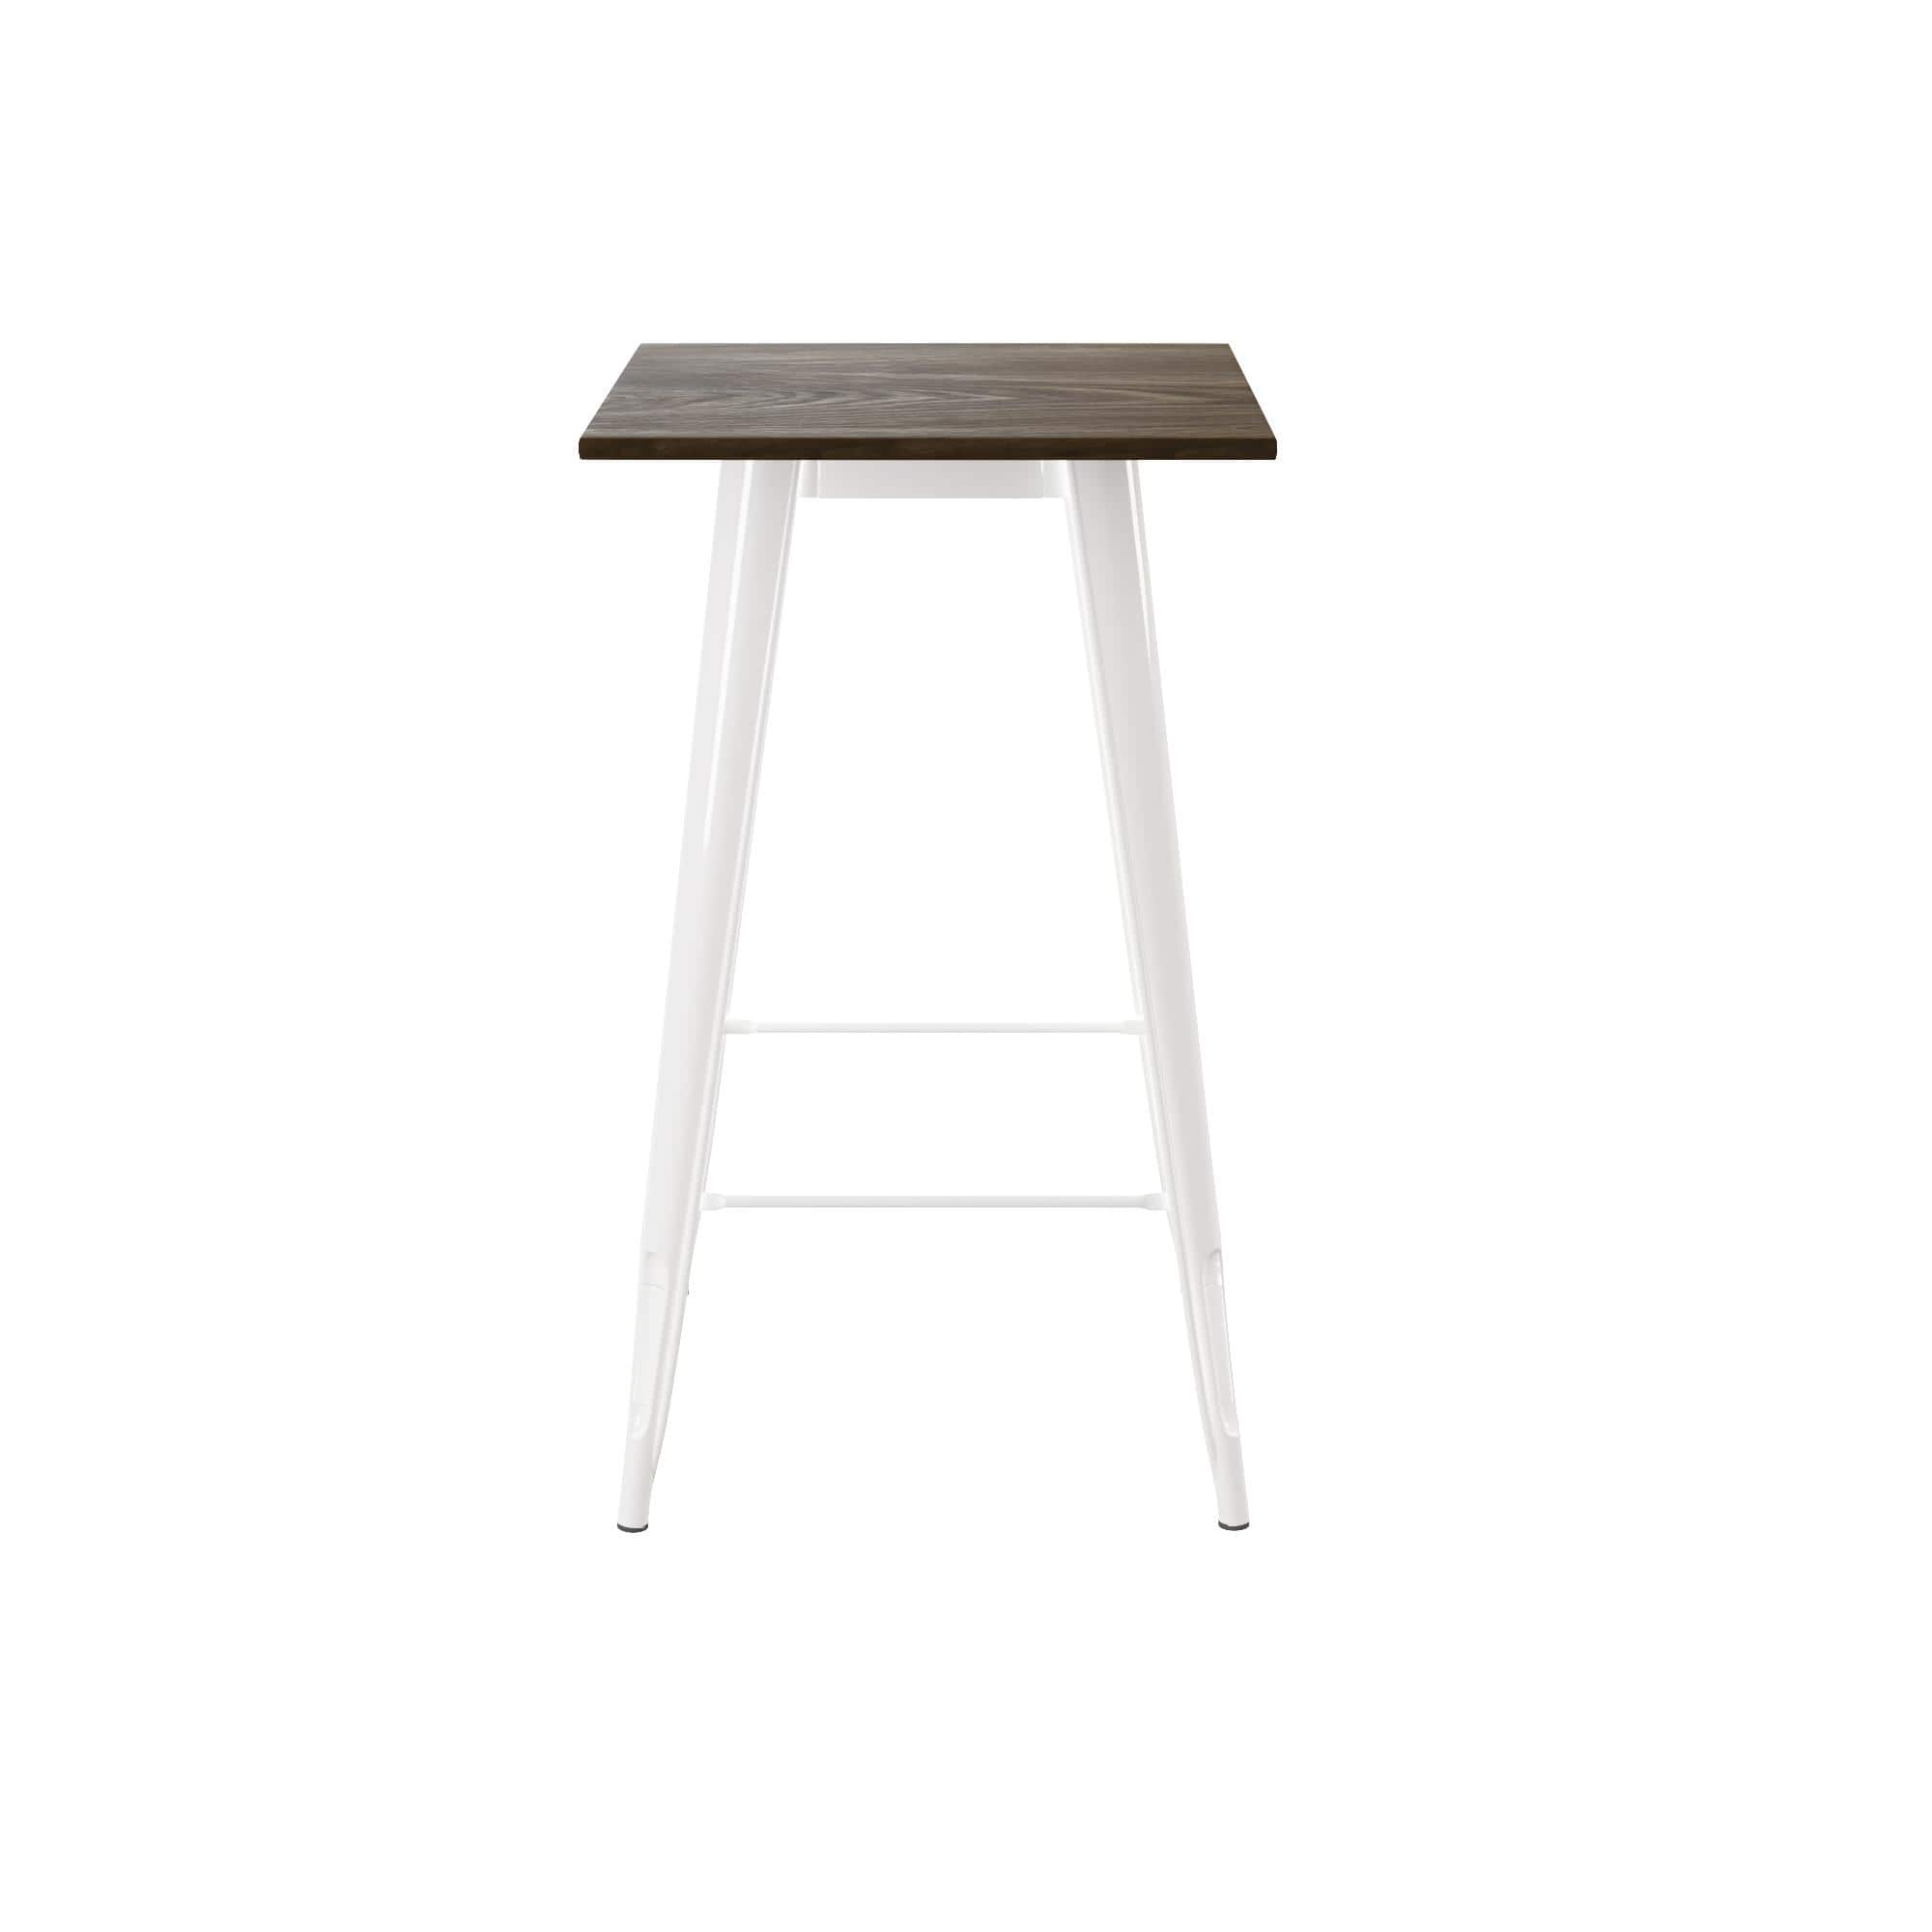 DHP Fusion Square Bar Table, Antique Gun Metal/Wood Top (White) $74 + Free shipping